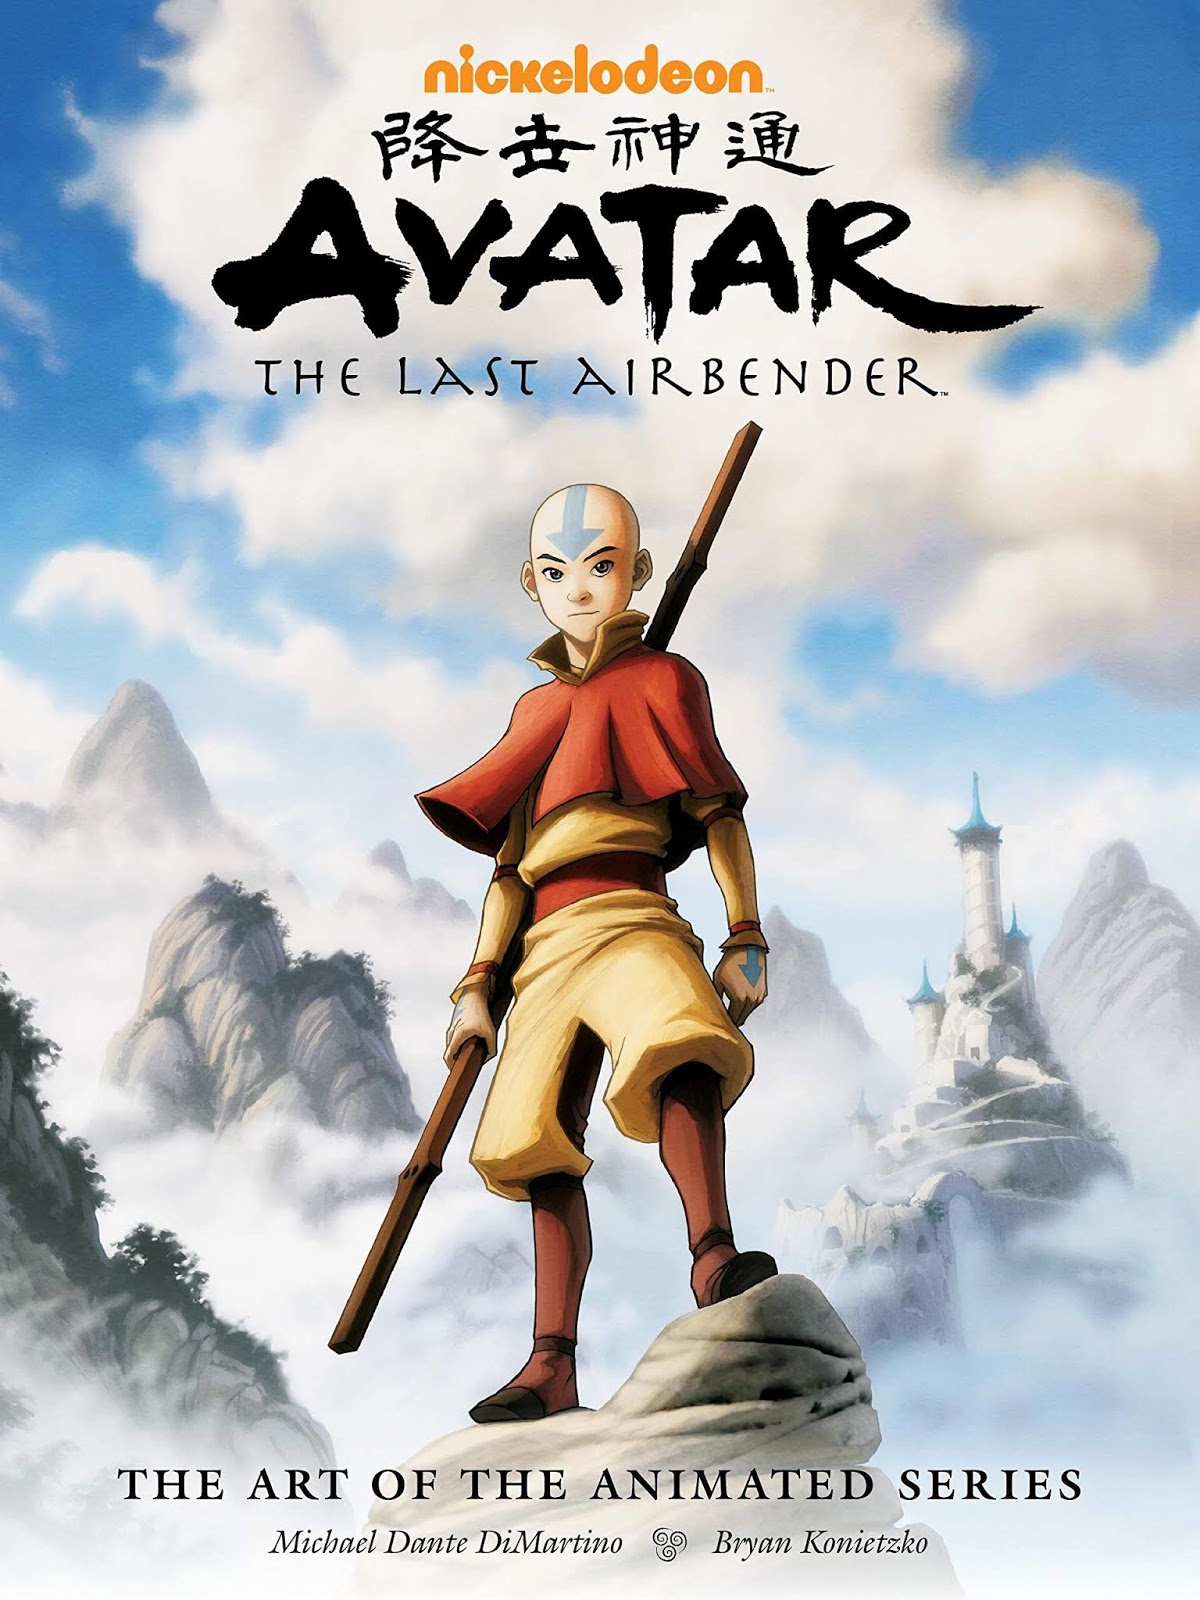 Avatar The Last Airbender Nickelodeon : avatar, airbender, nickelodeon, NickALive!:, Horse, Reprint, 'Avatar:, Airbender, Animated, Series'